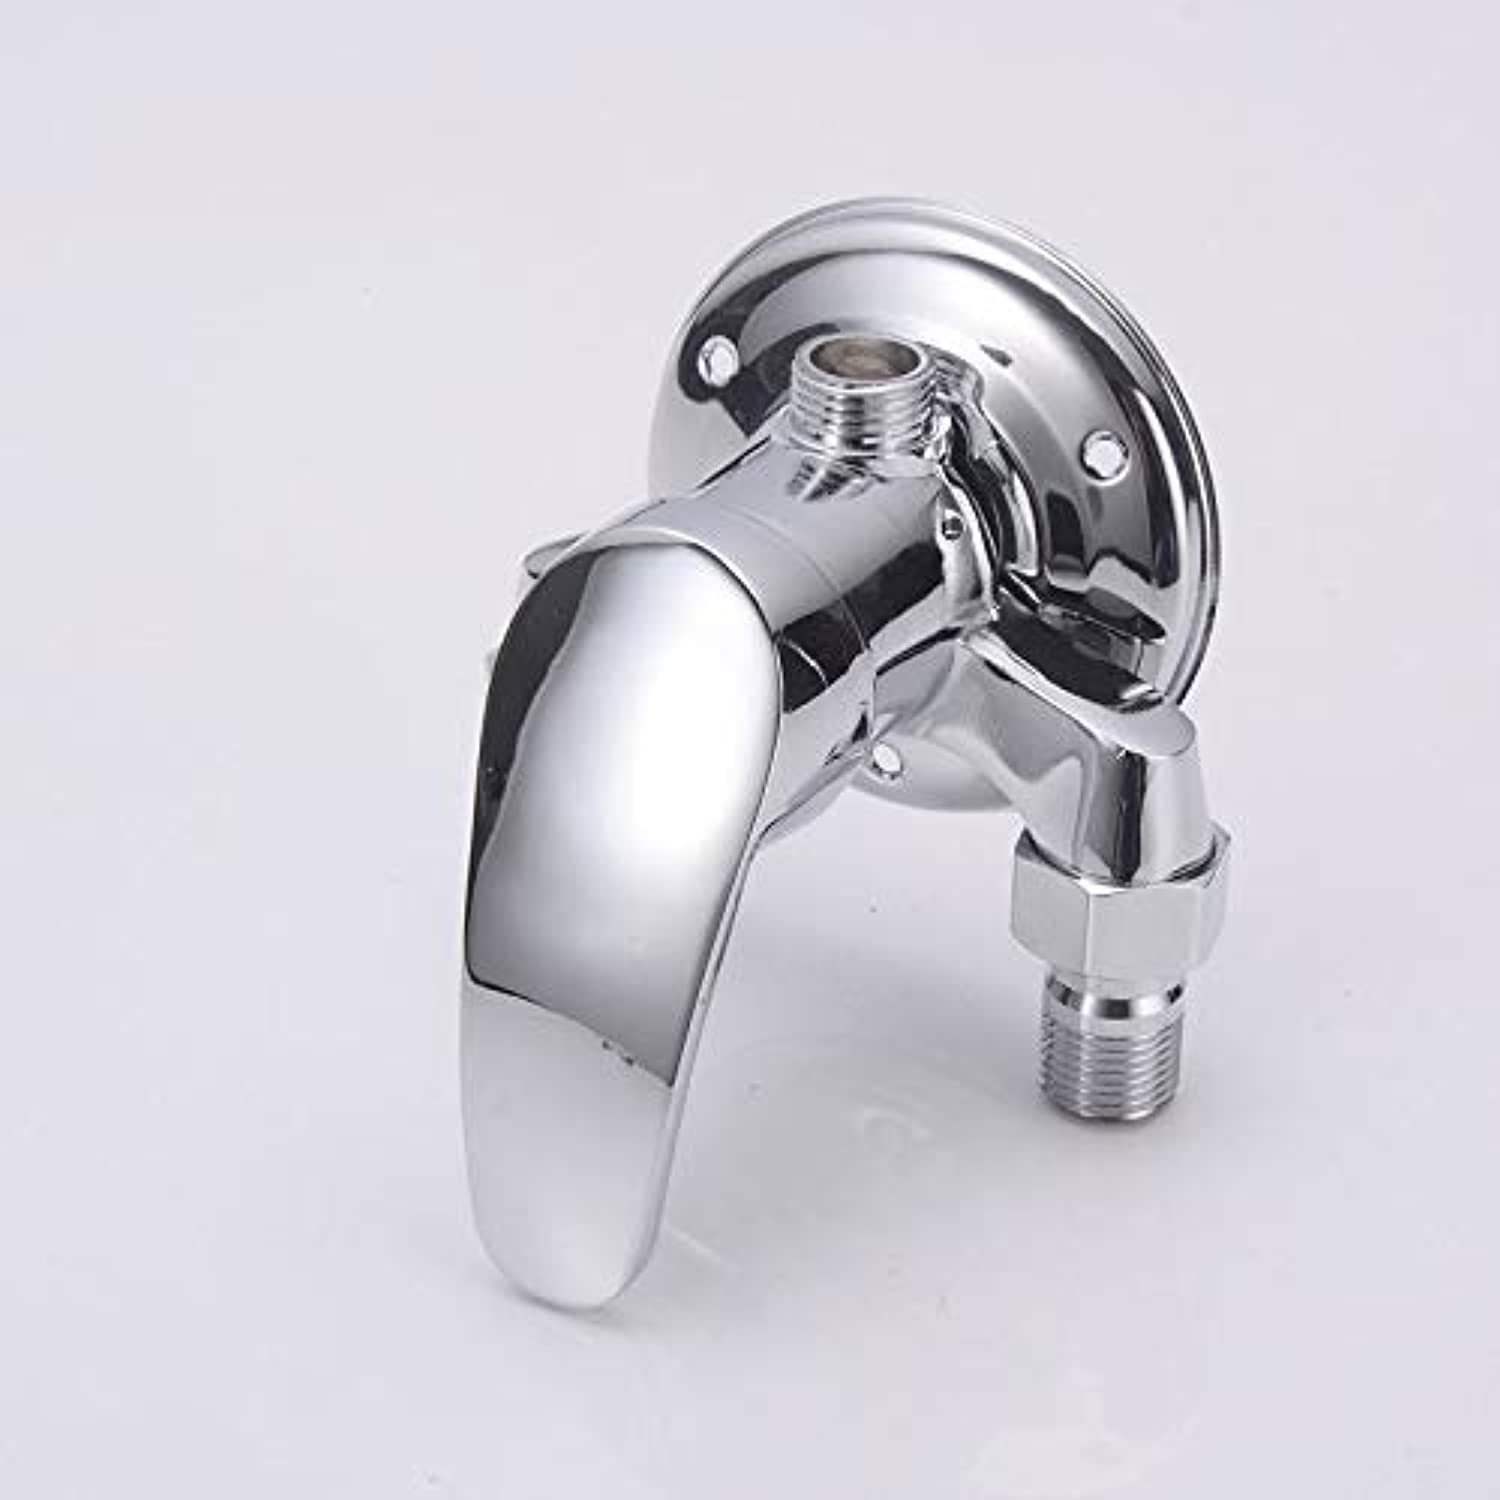 redOOY Taps Zinc Alloy Shower Faucet Bathtub Faucet Triangle Shower Faucet